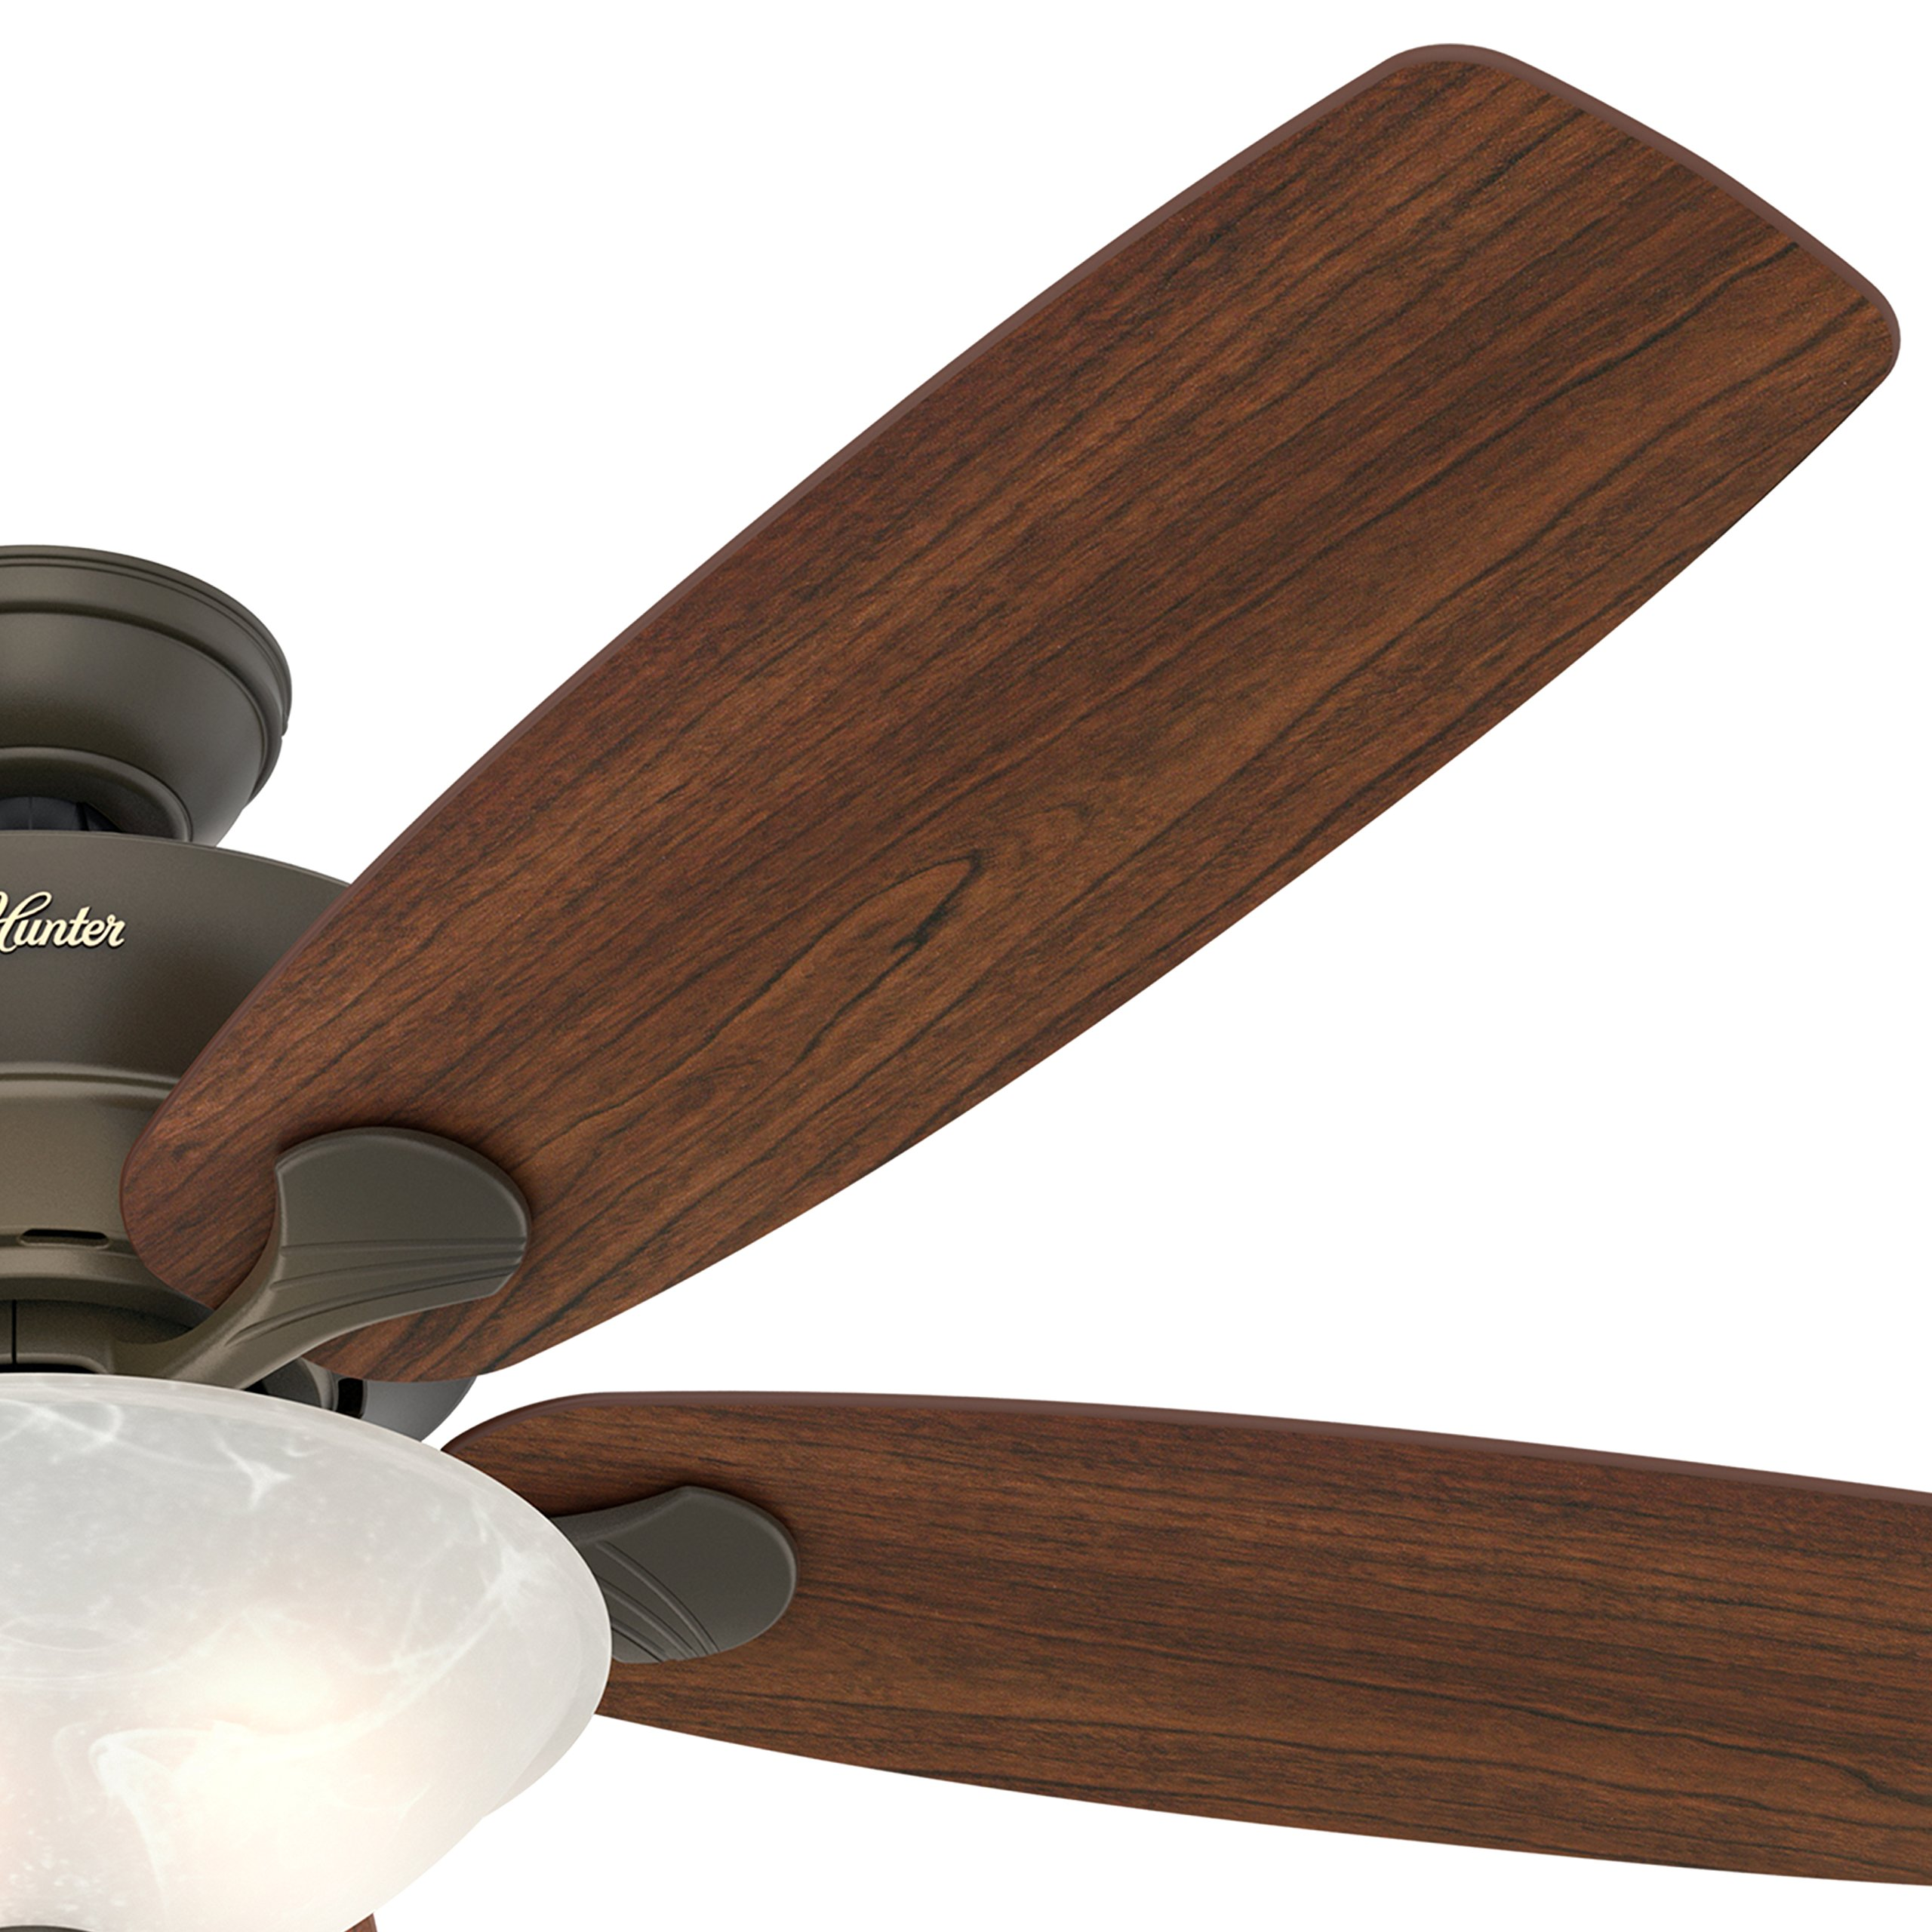 decoration kerry design e best vertical lightings brass subscribed palmetto sawyer blades from home separately fans paddle org fan has invitein with credited fanimation antique stylish section ceiling depot sold